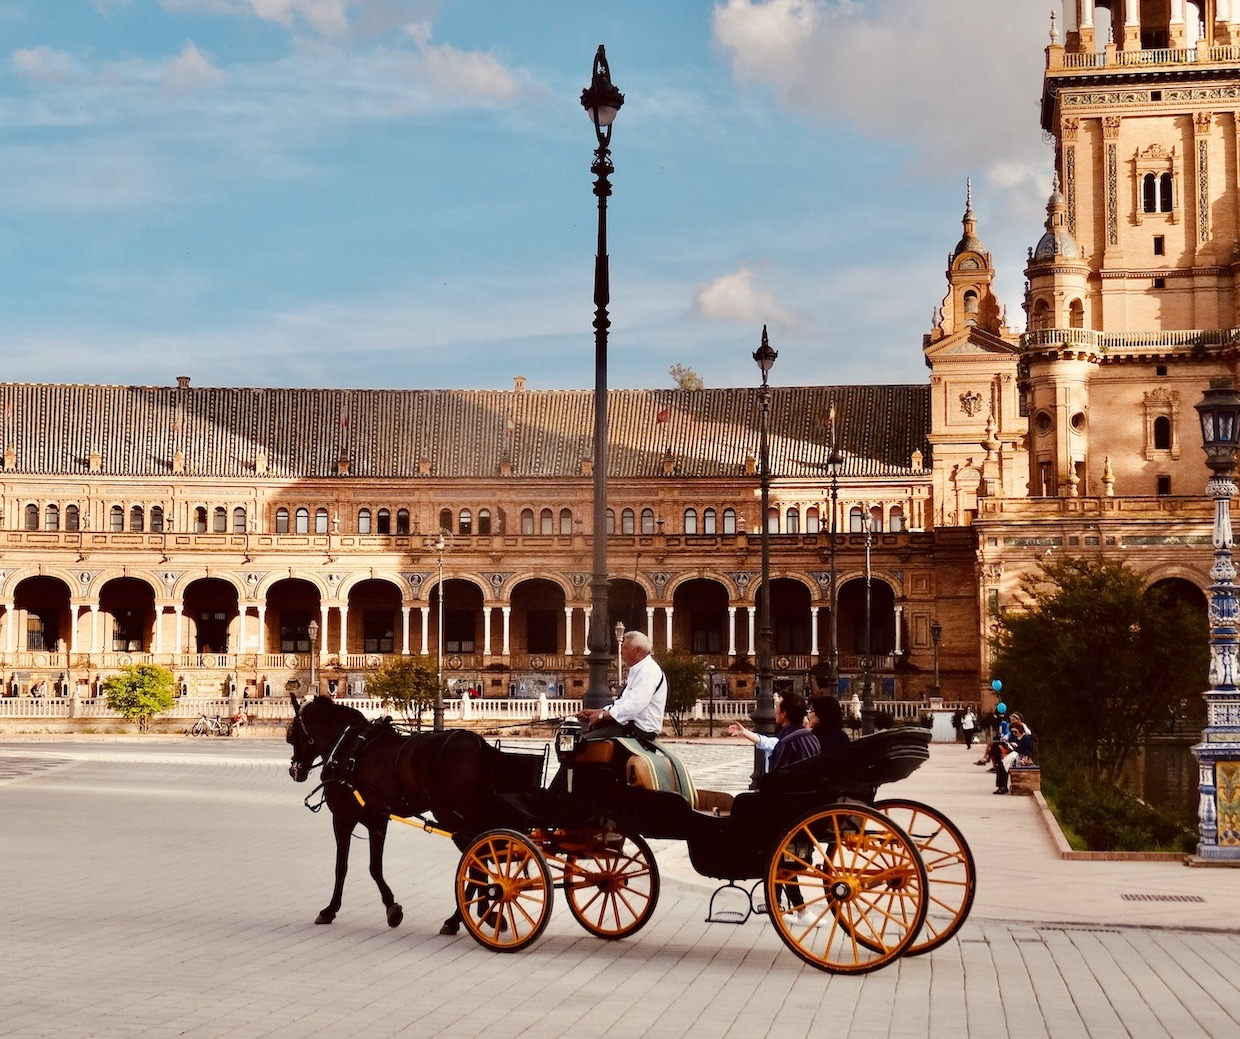 Horse and carriage Plaza de Espana.